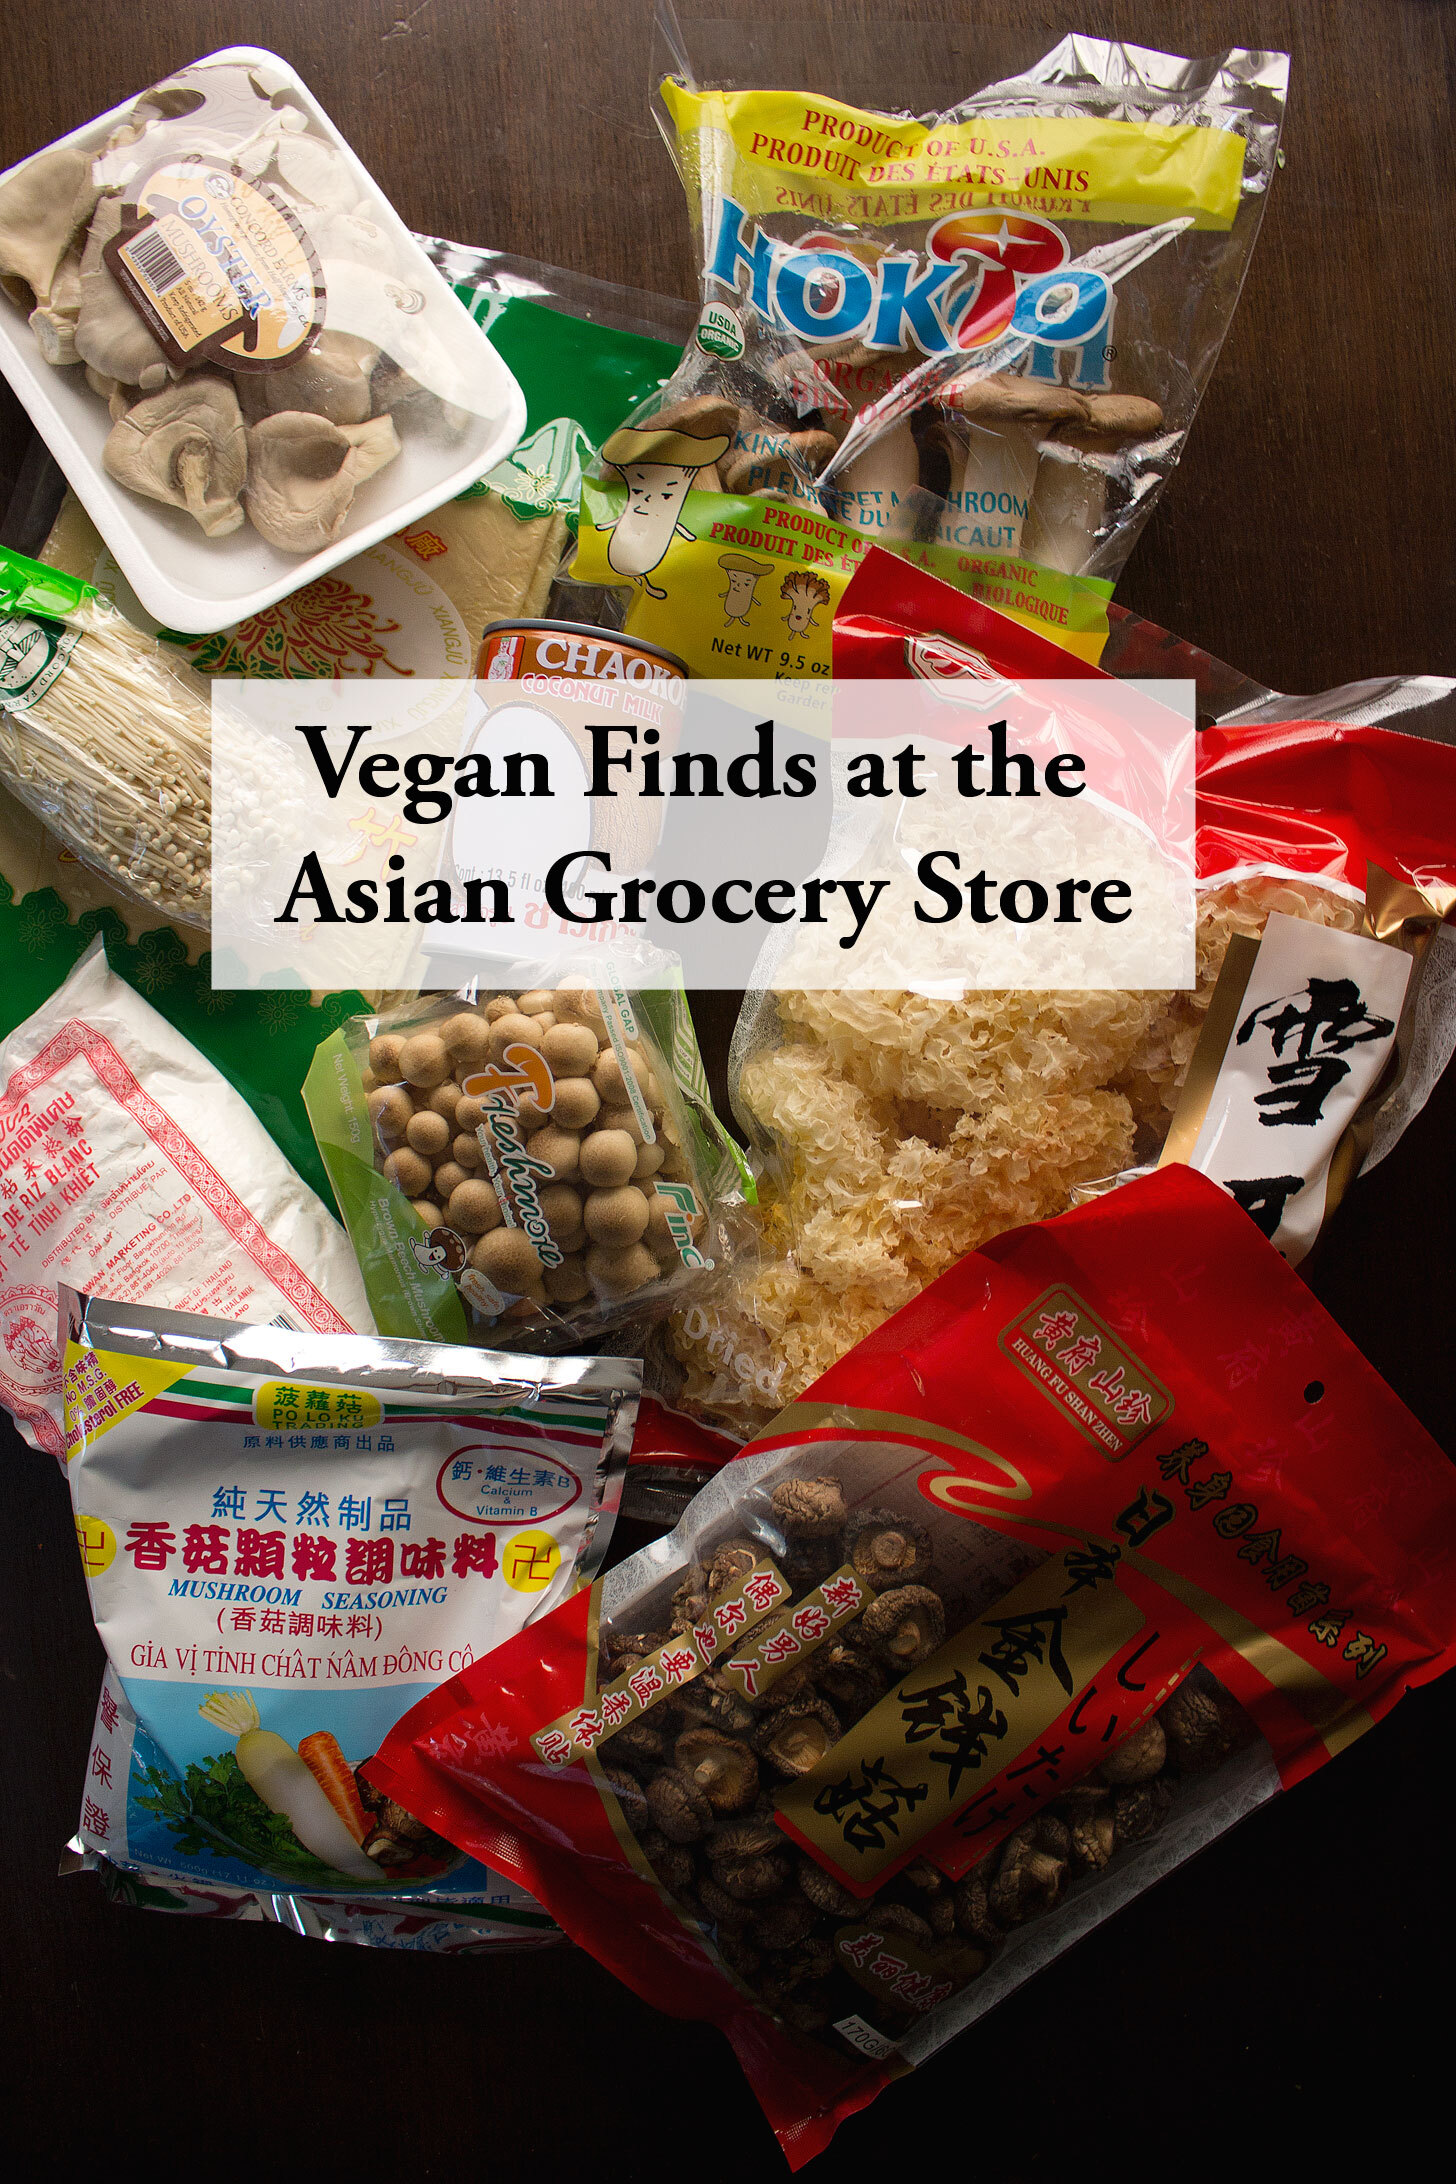 Vegan Finds at the Asian Grocery Store